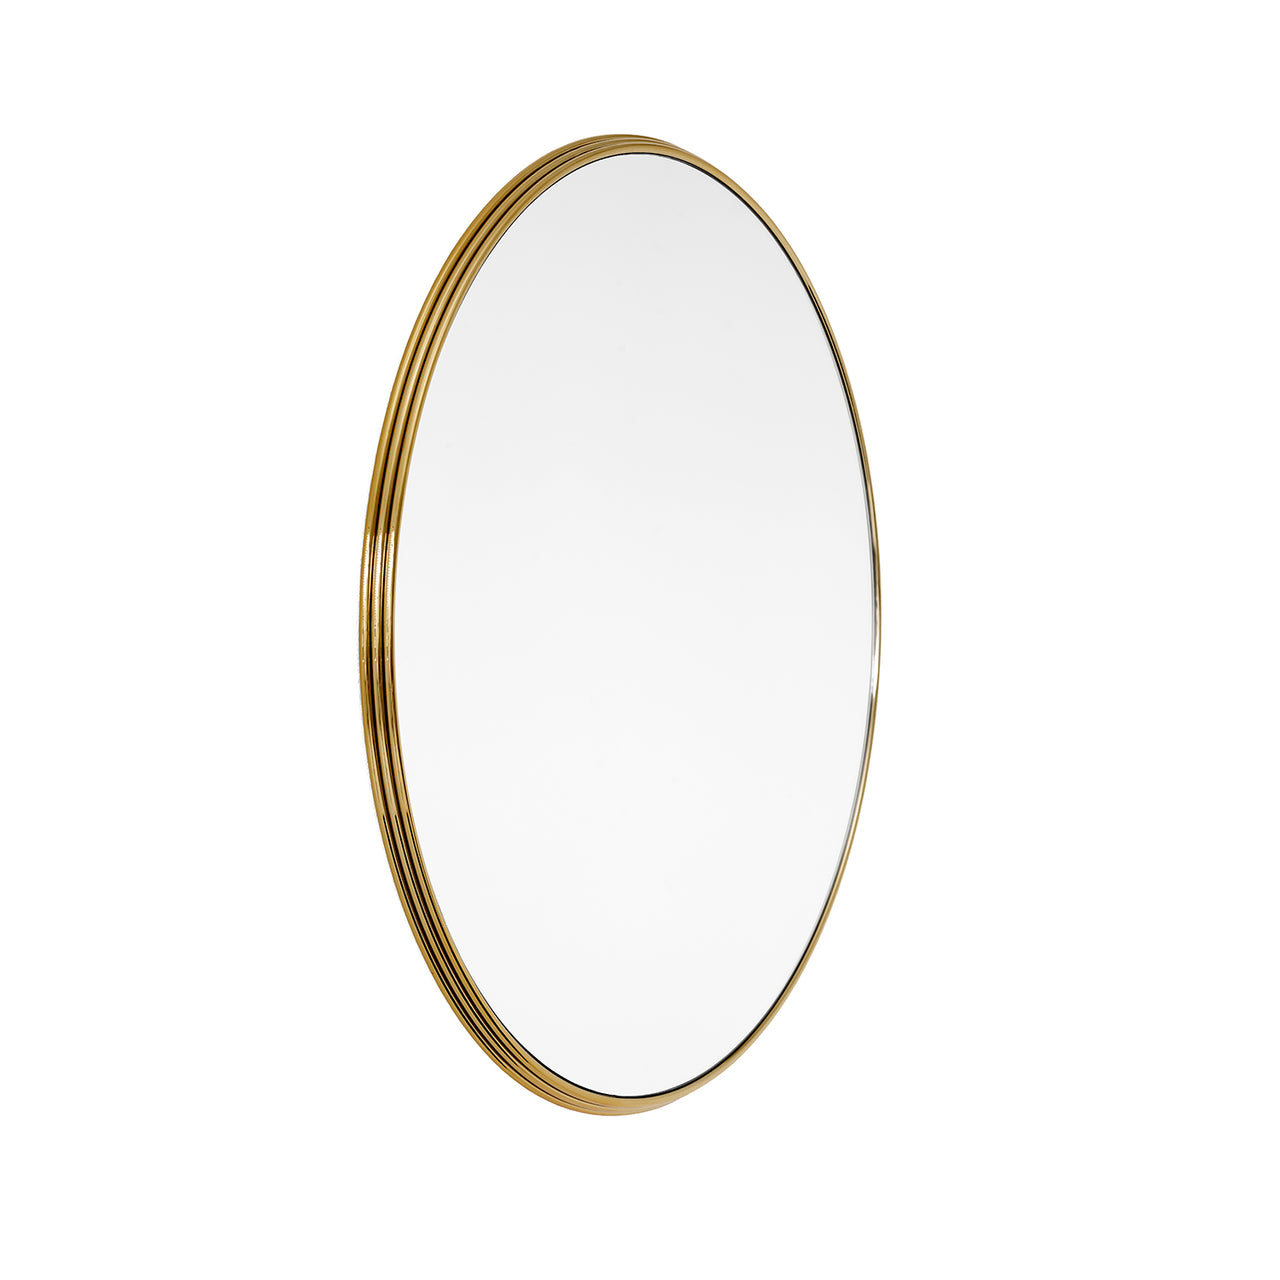 Sillon Mirror Series: SH4, SH5, SH6: Large (SH6) + Brass